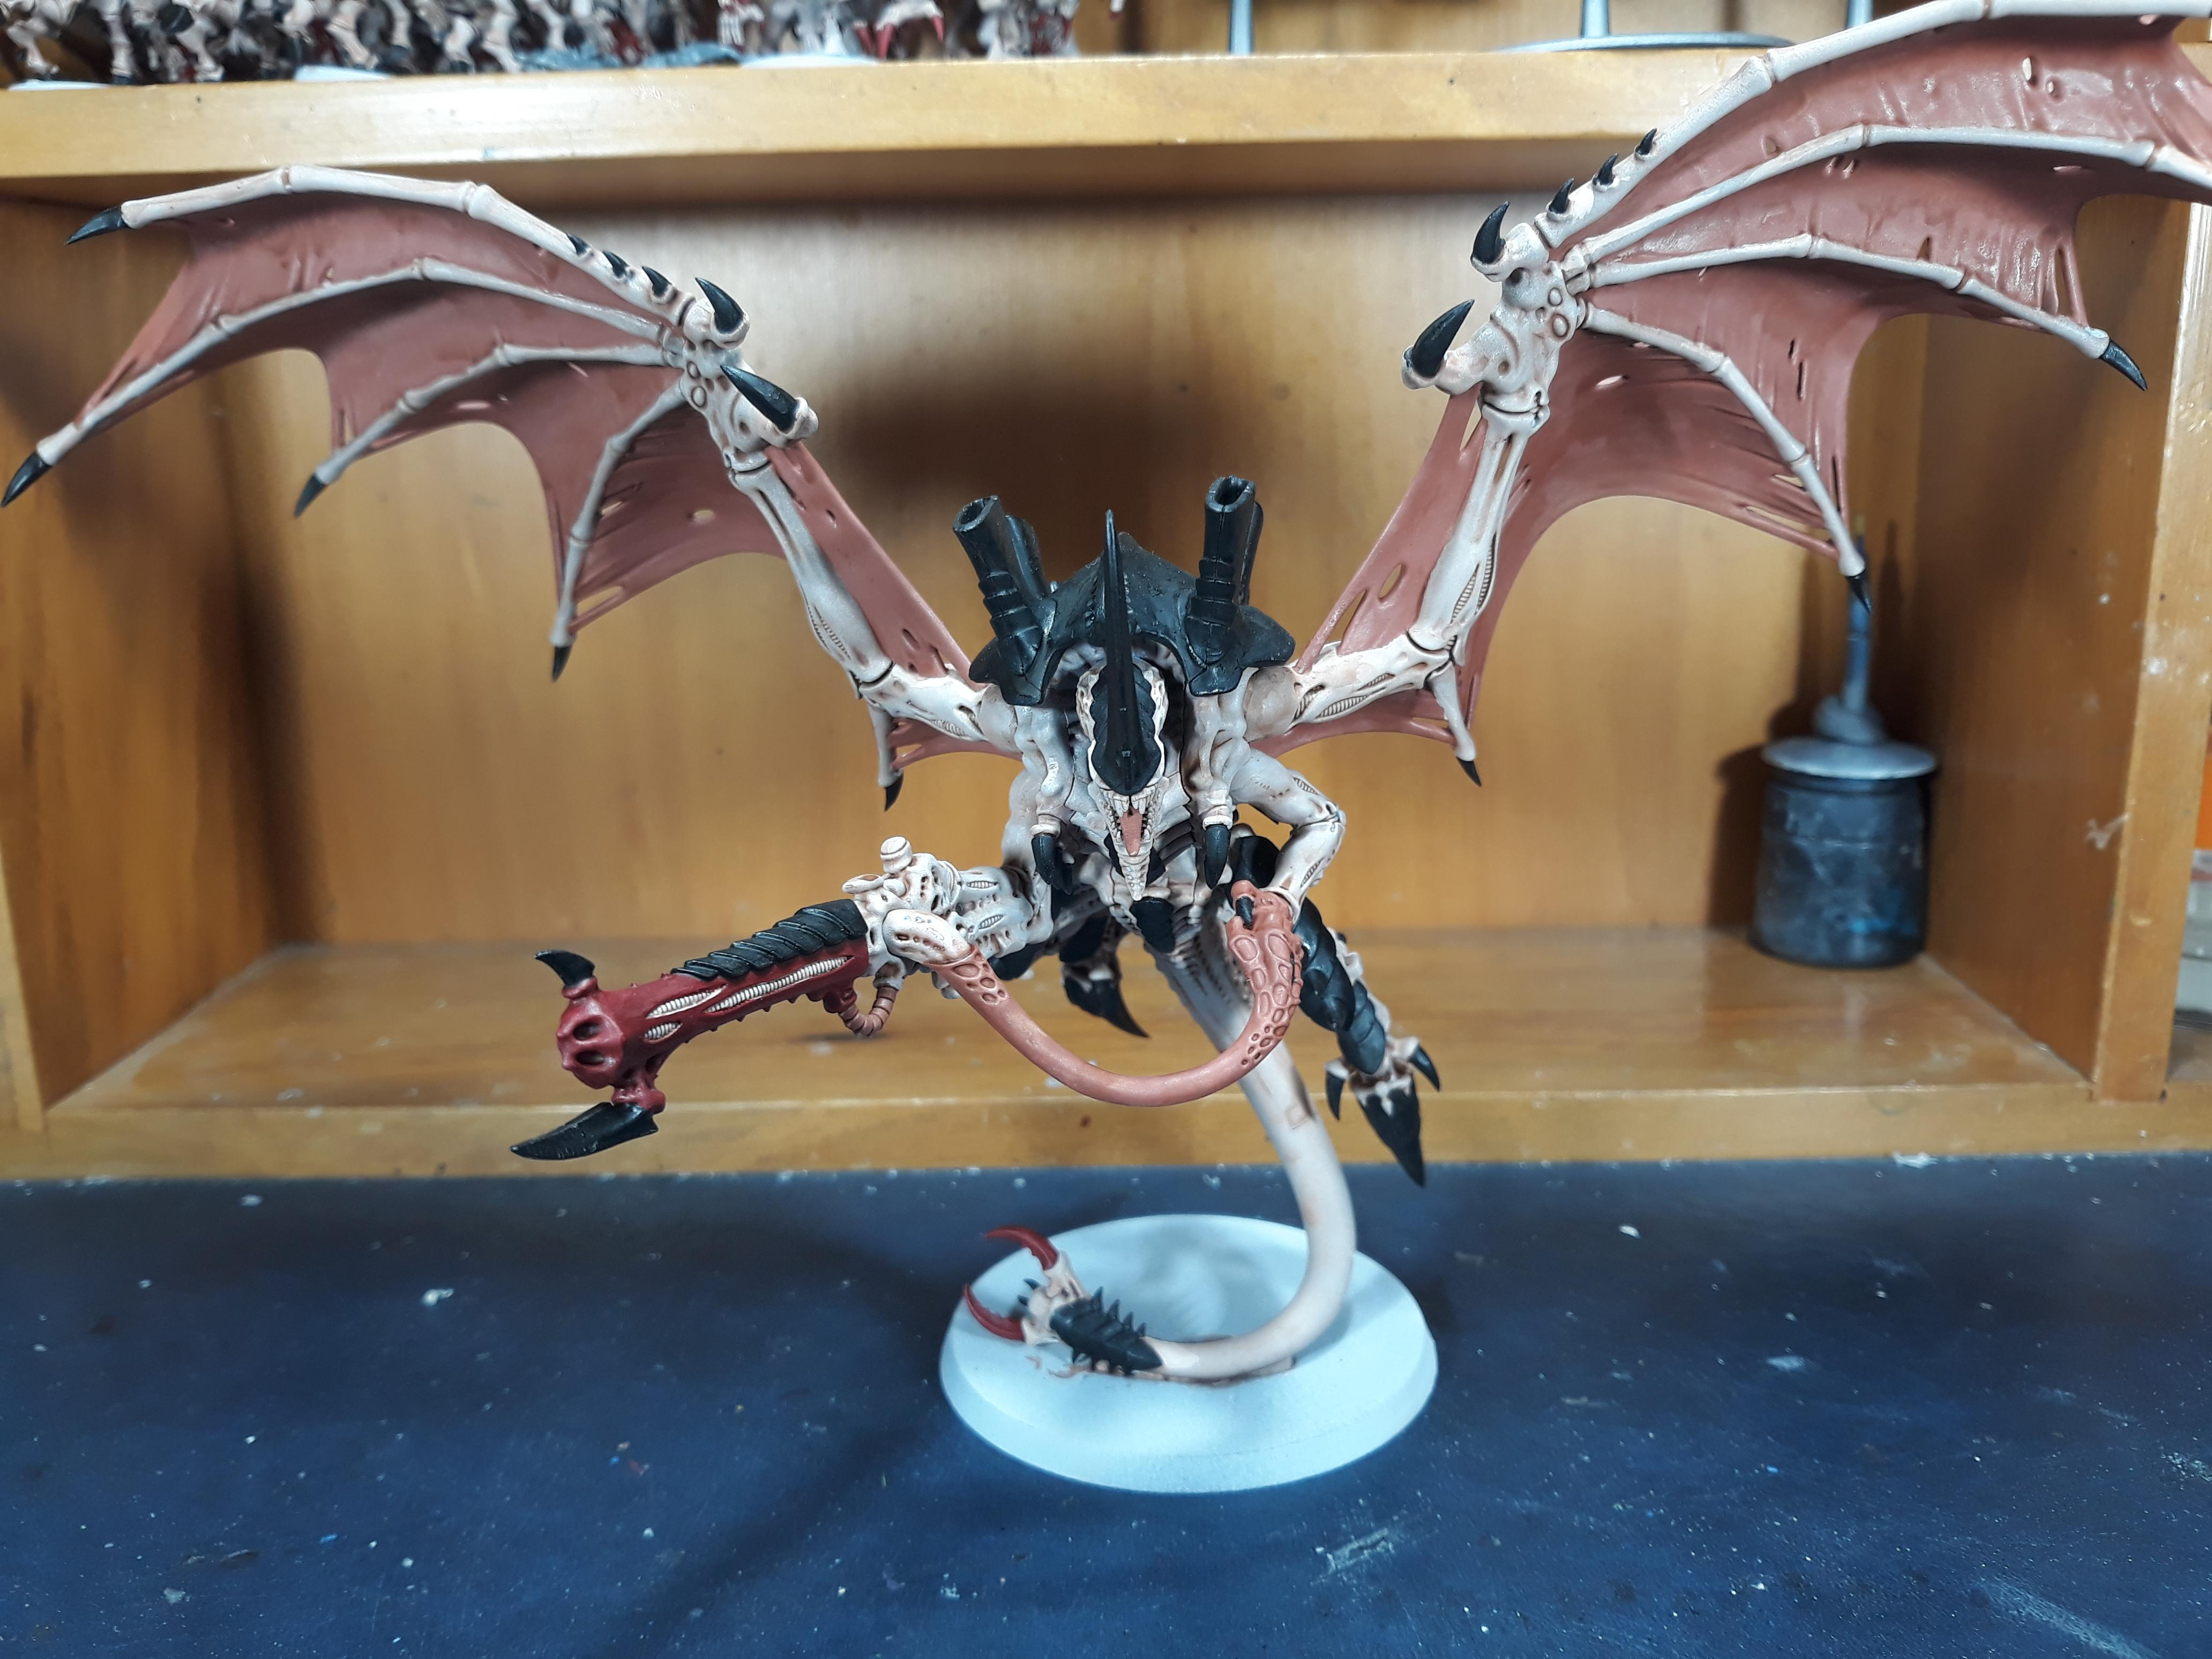 Flying Hive Tyrant done with barbed